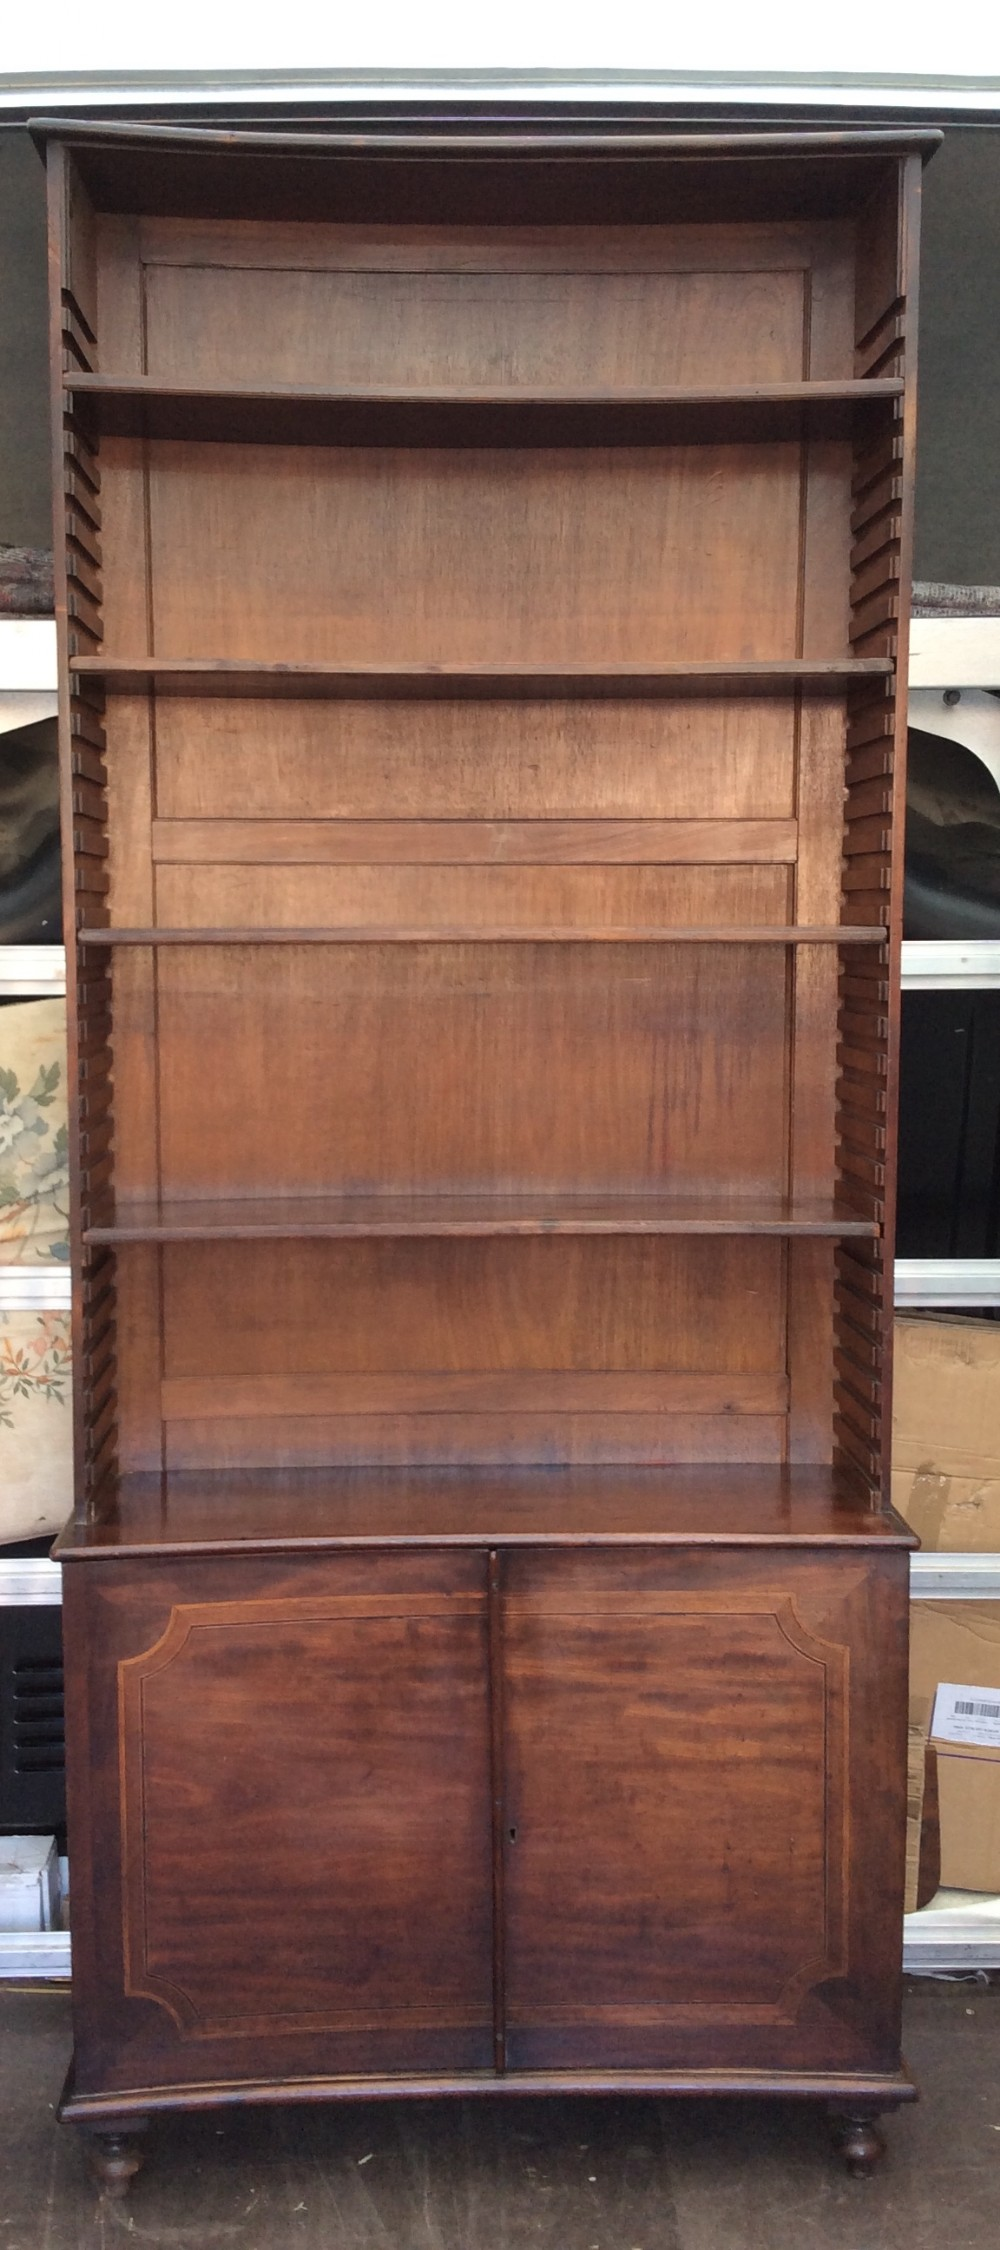 18thc concave mahogany bokcase with adjustable shelves